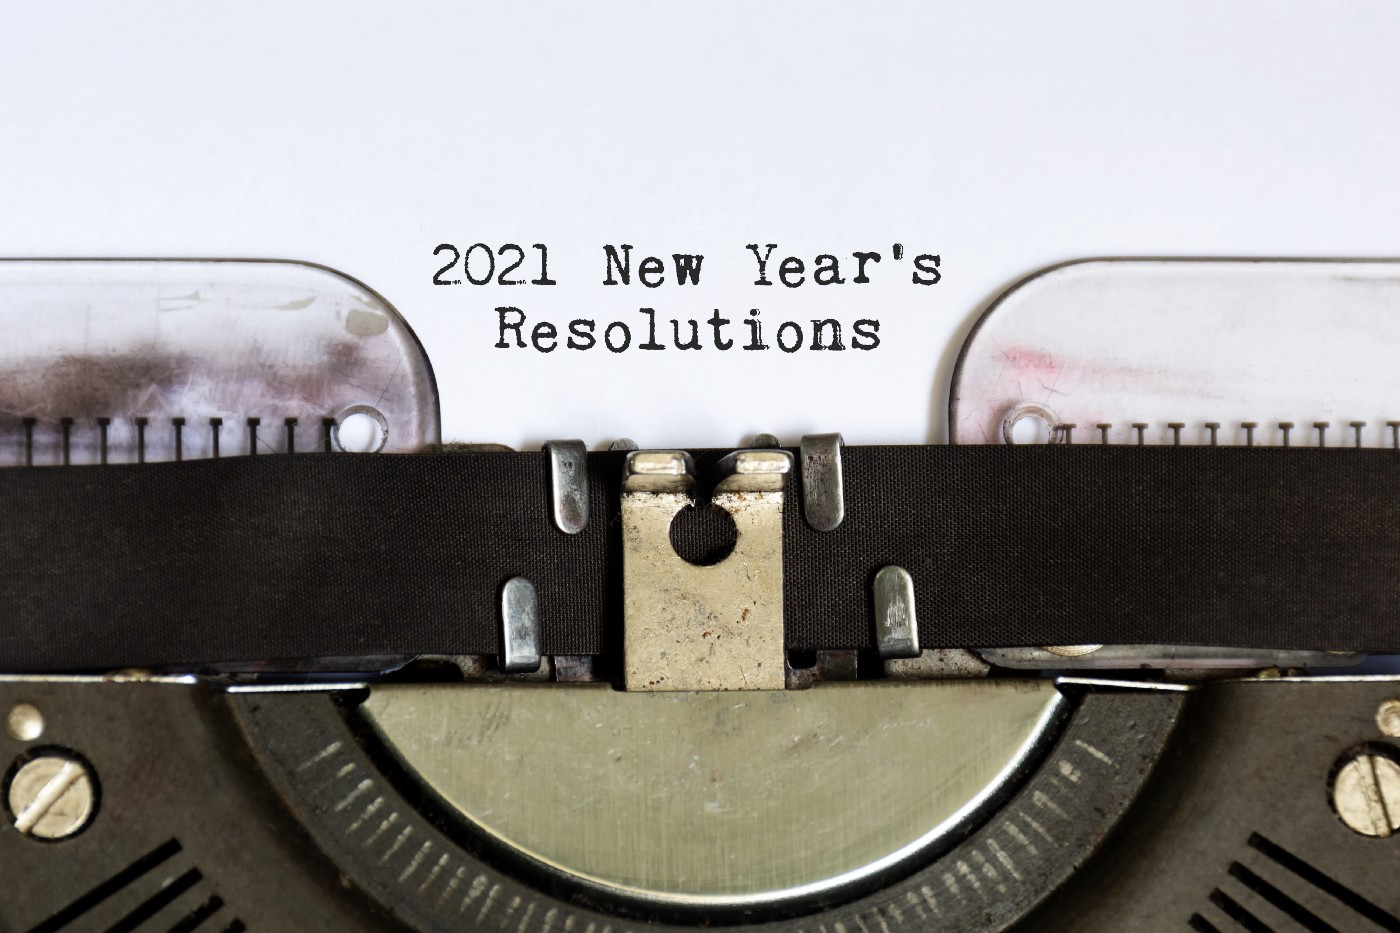 2021 New Year's Resolutions typed by a typewriter.